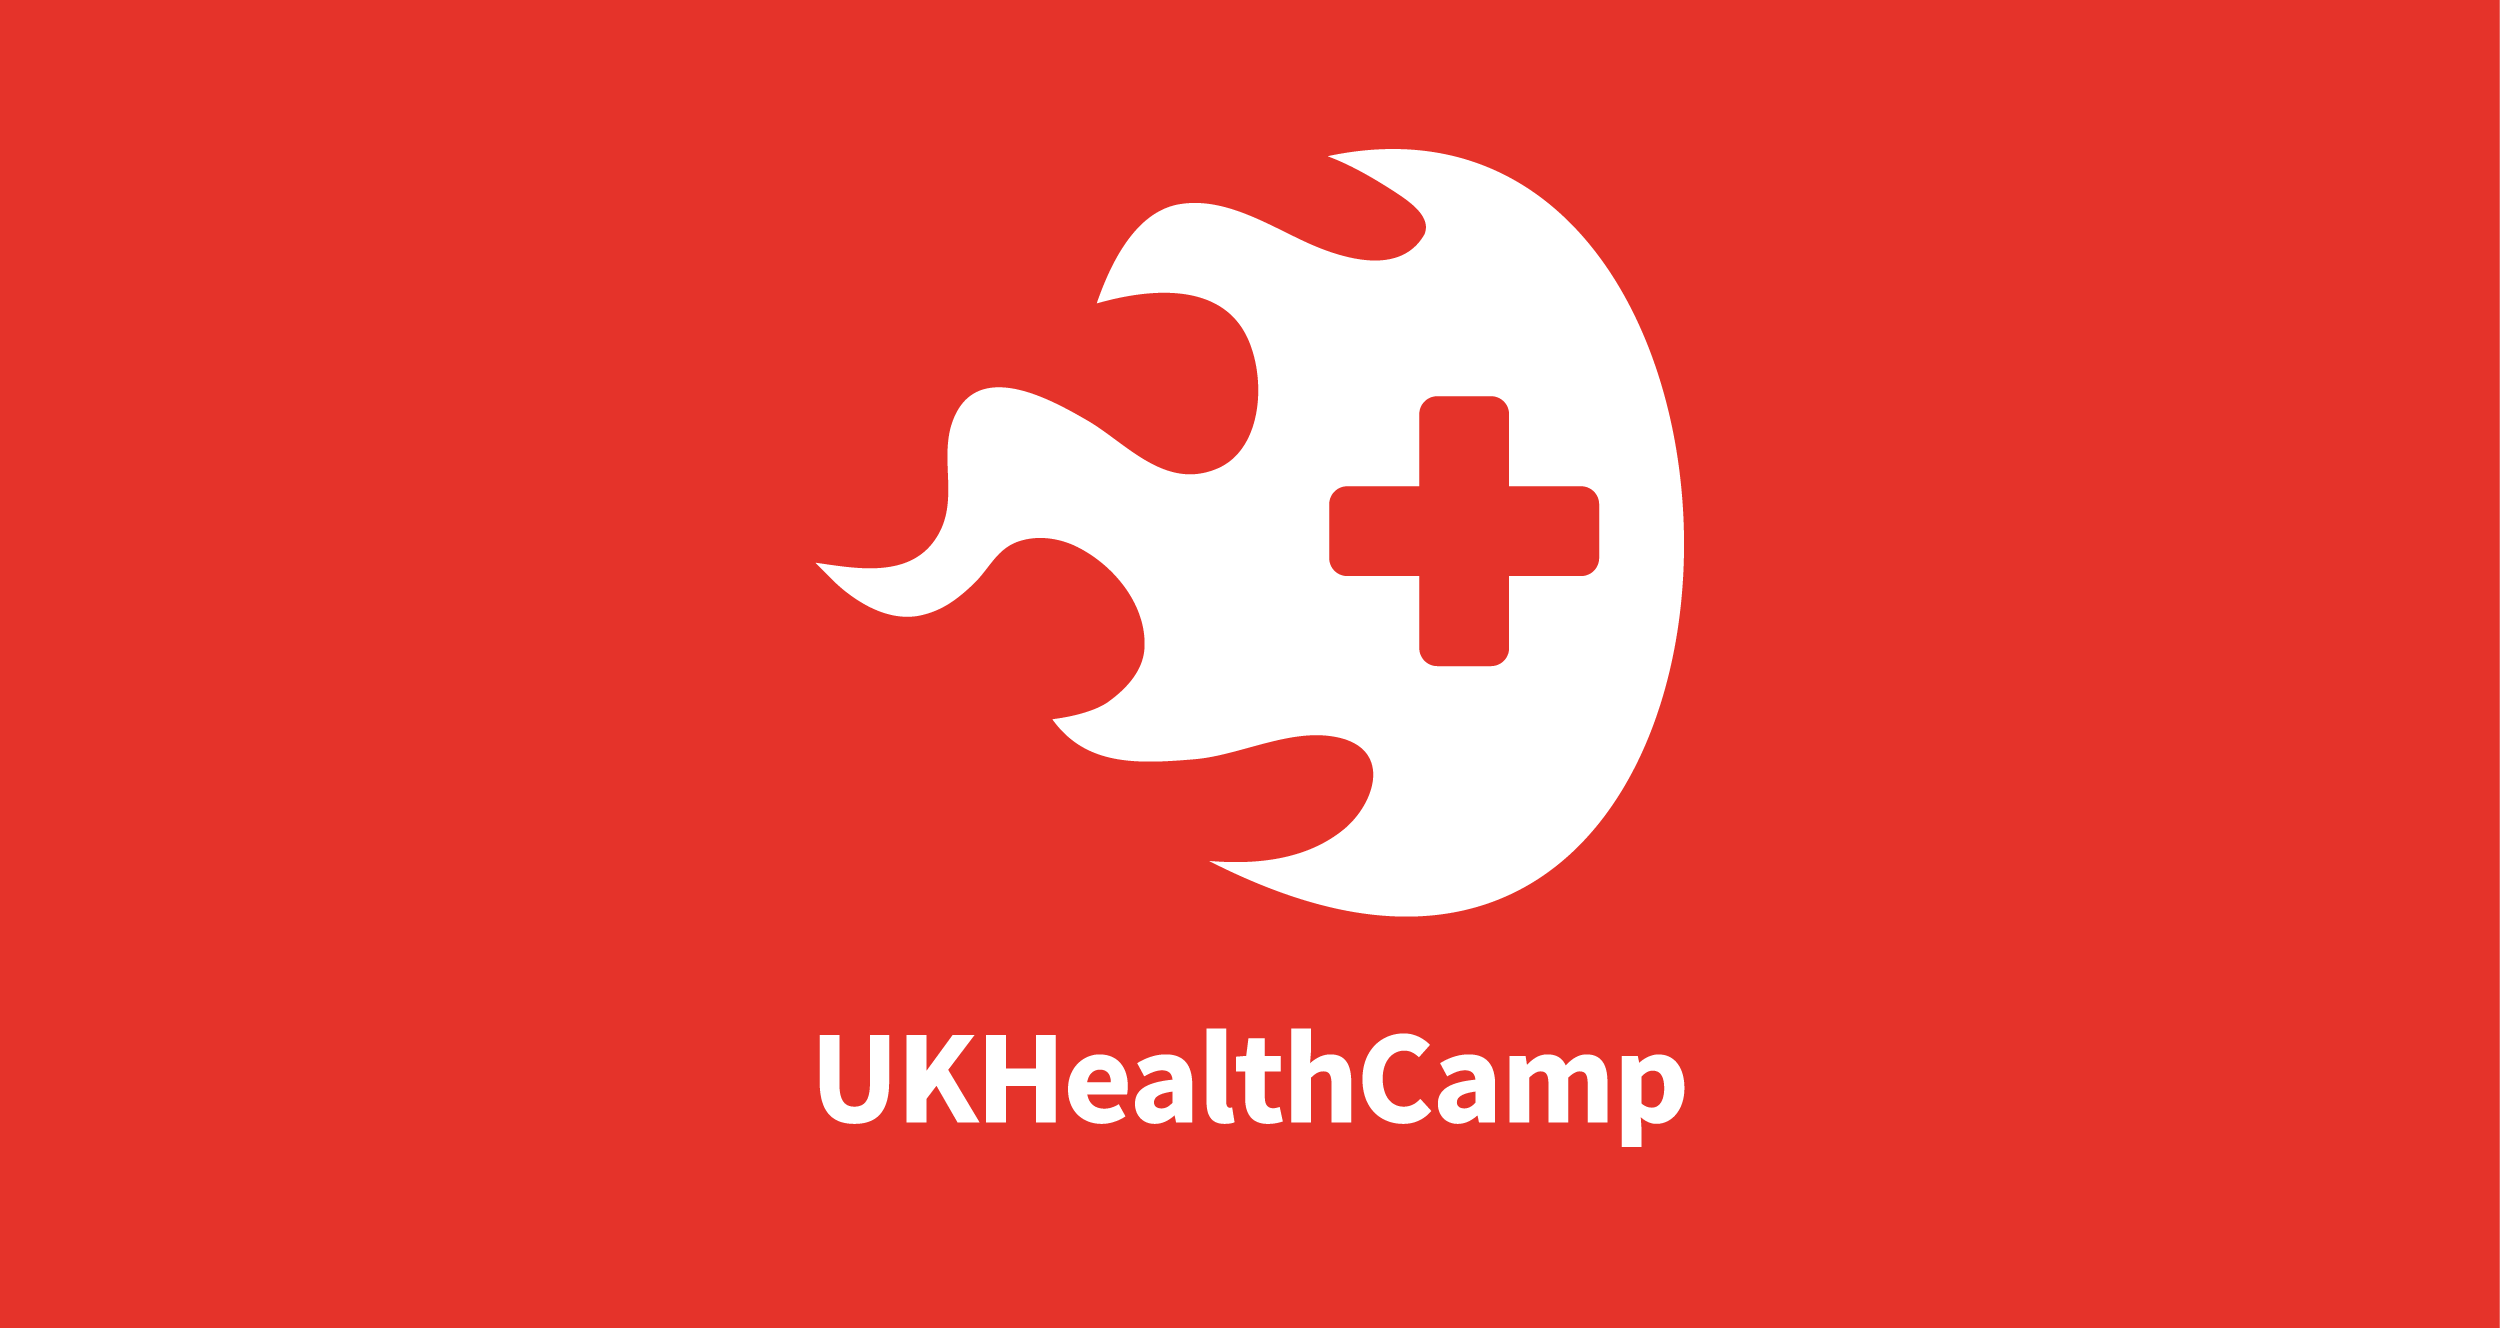 UKHealthCamp logo